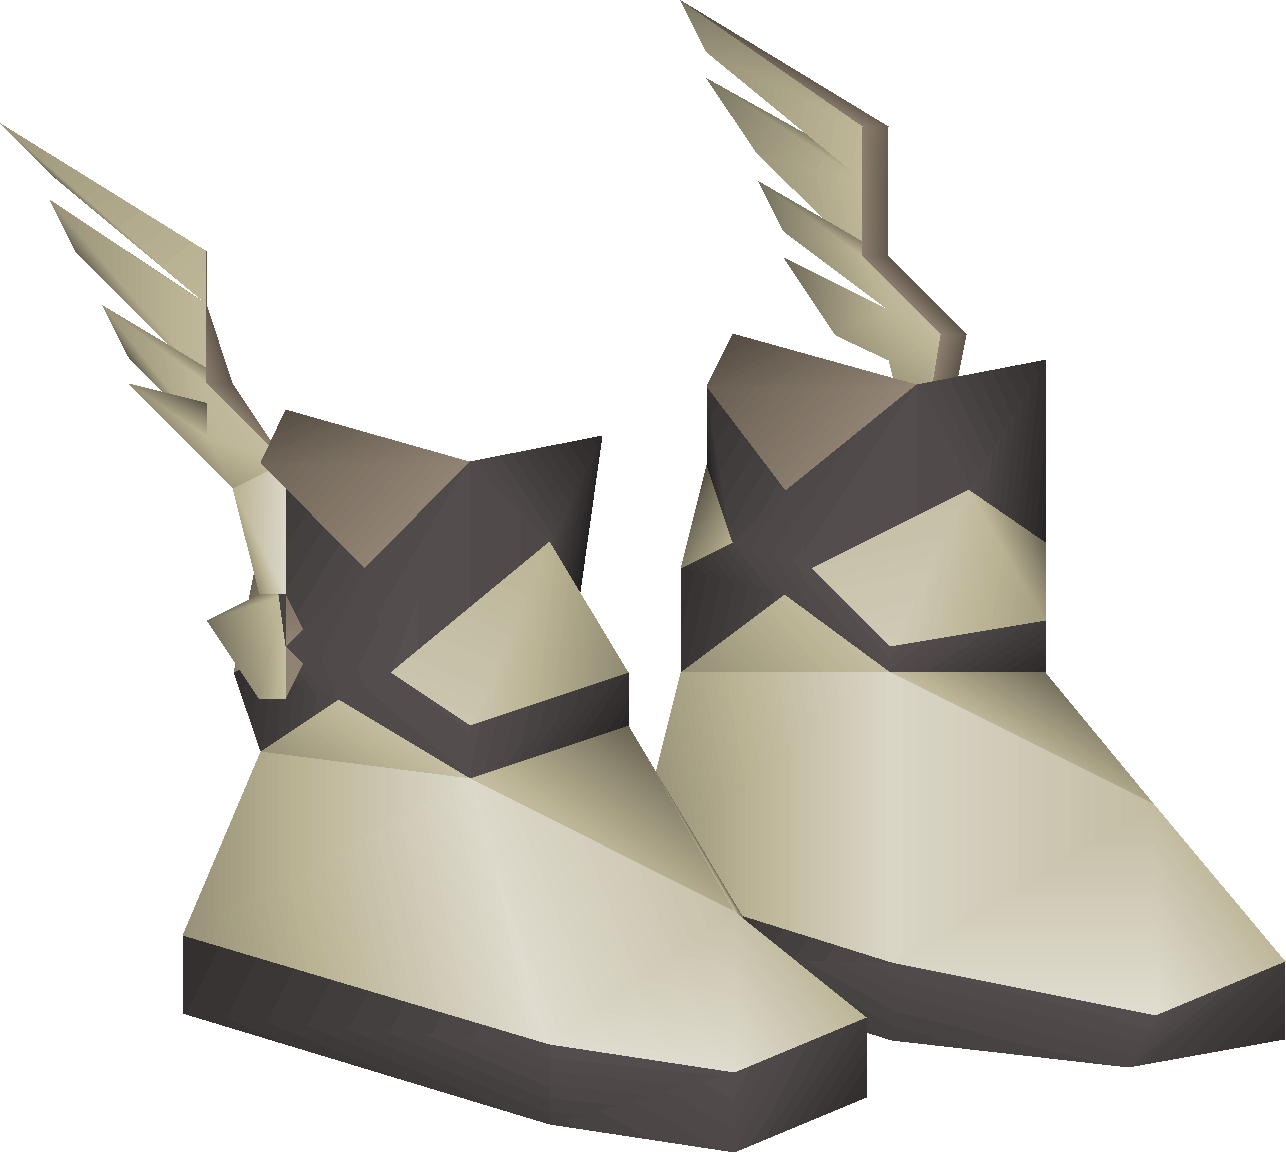 Graceful boots - OSRS Wiki